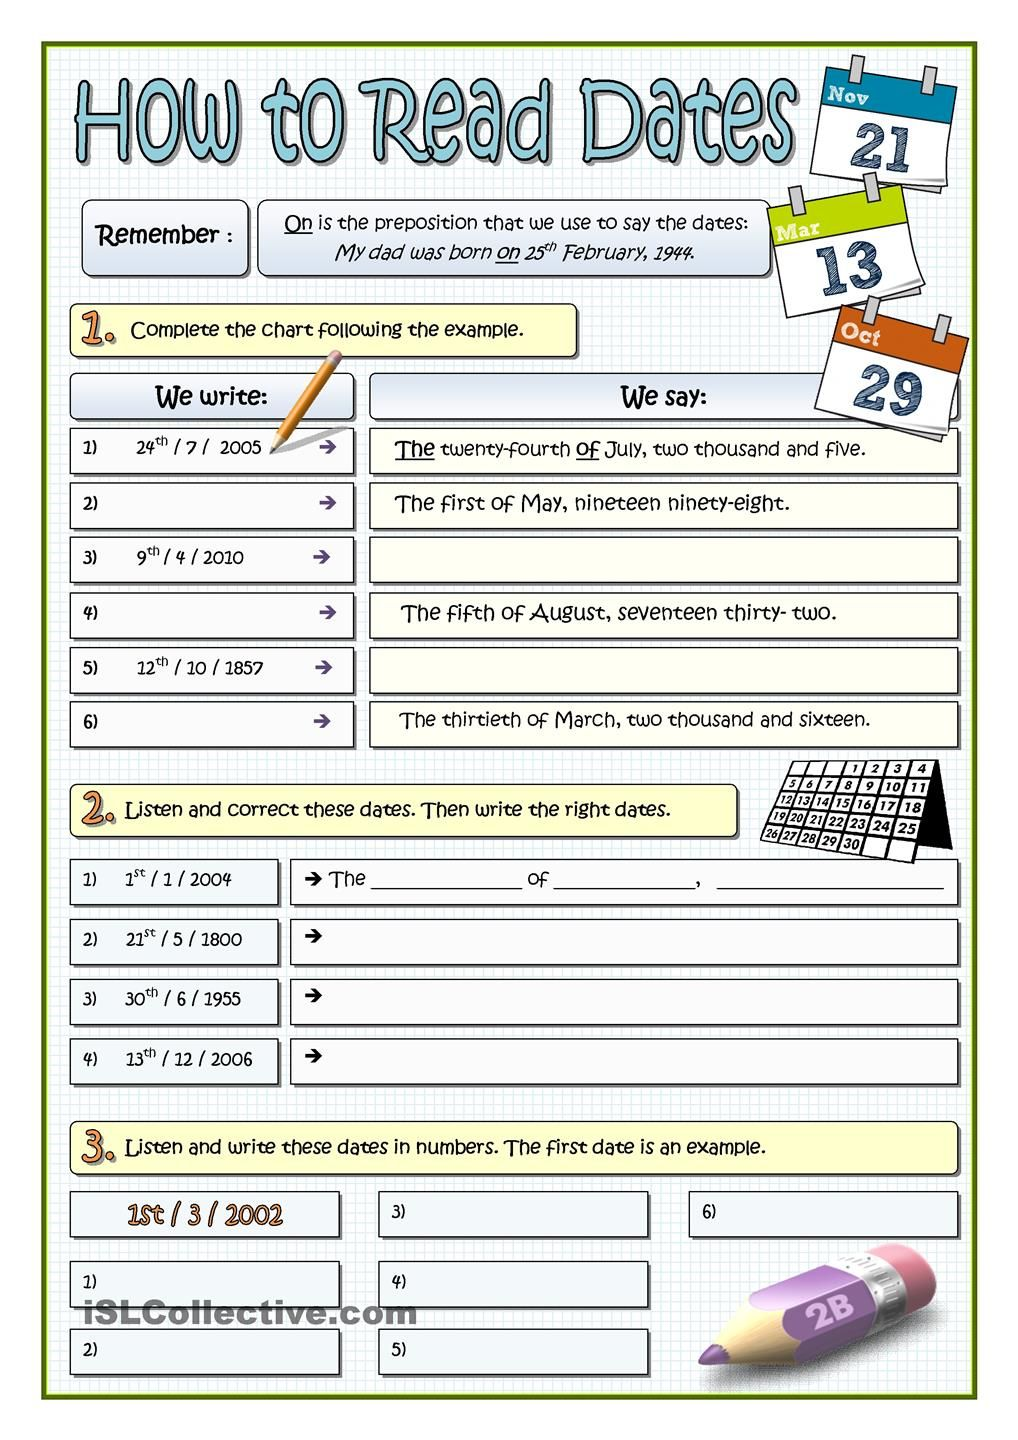 HOW TO READ DATES | English worksheets | Pinterest | Englisch ...